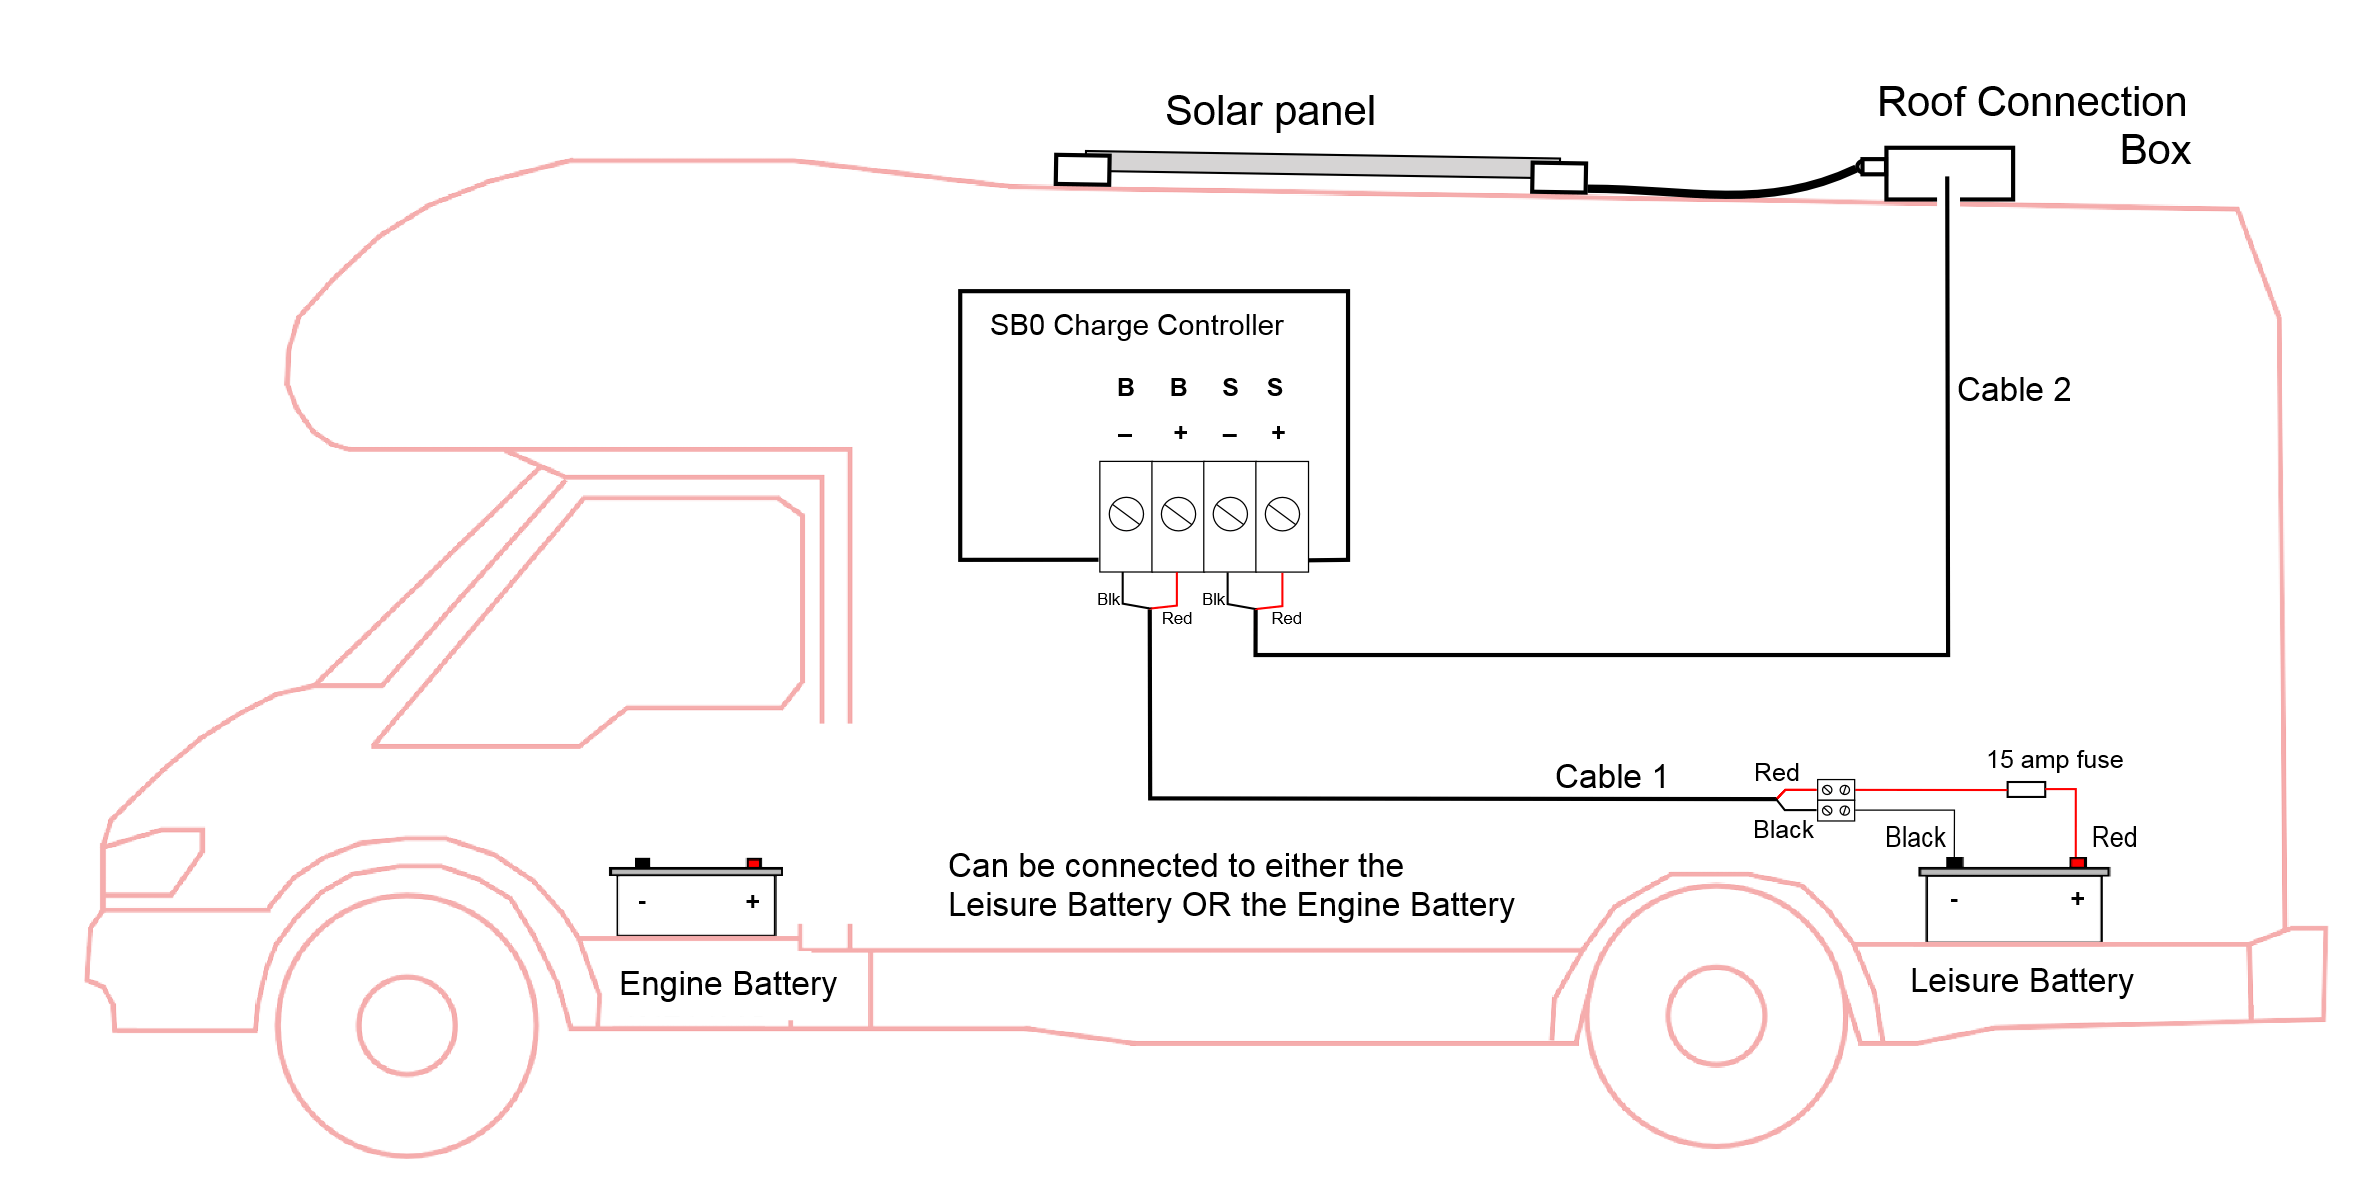 Wiring for Kit 80 UNO solar panel system choose correctly for your motorhome, boat or  at eliteediting.co